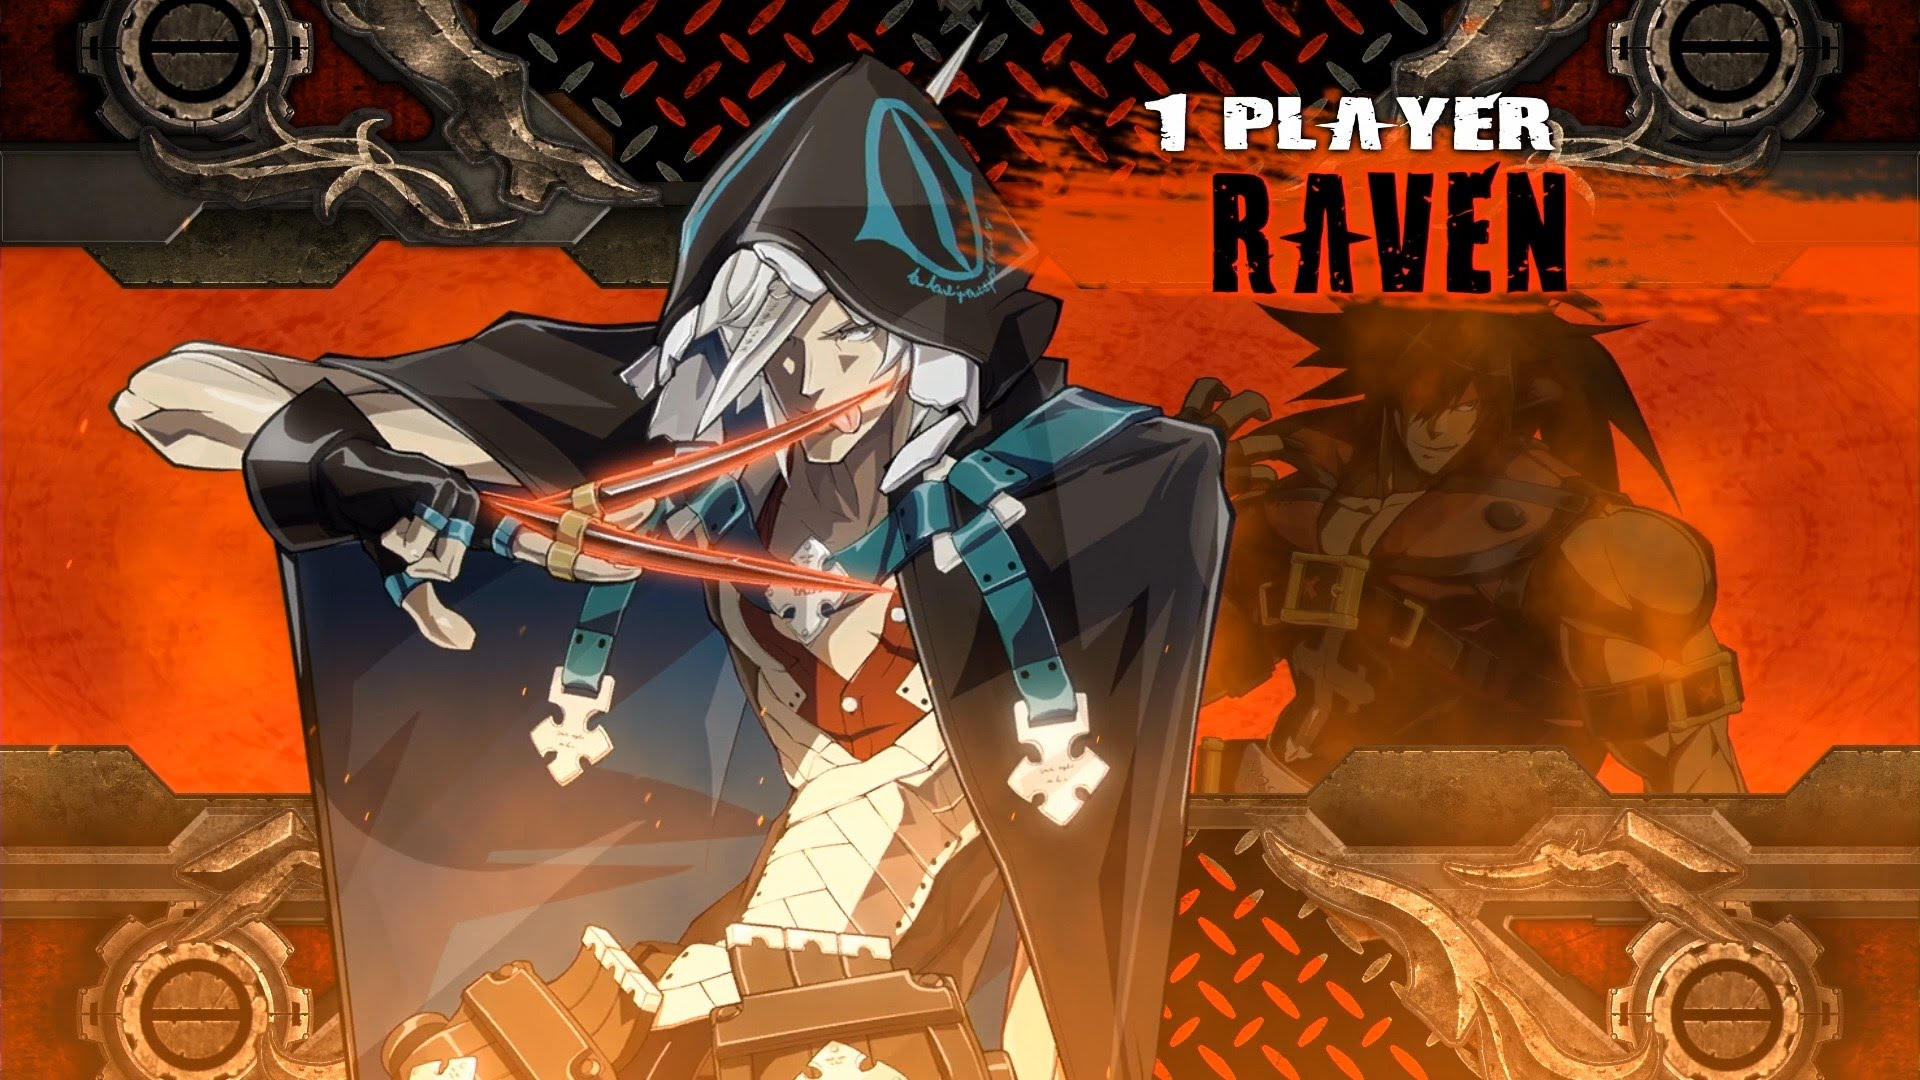 Guilty Gear: Raven HD pics